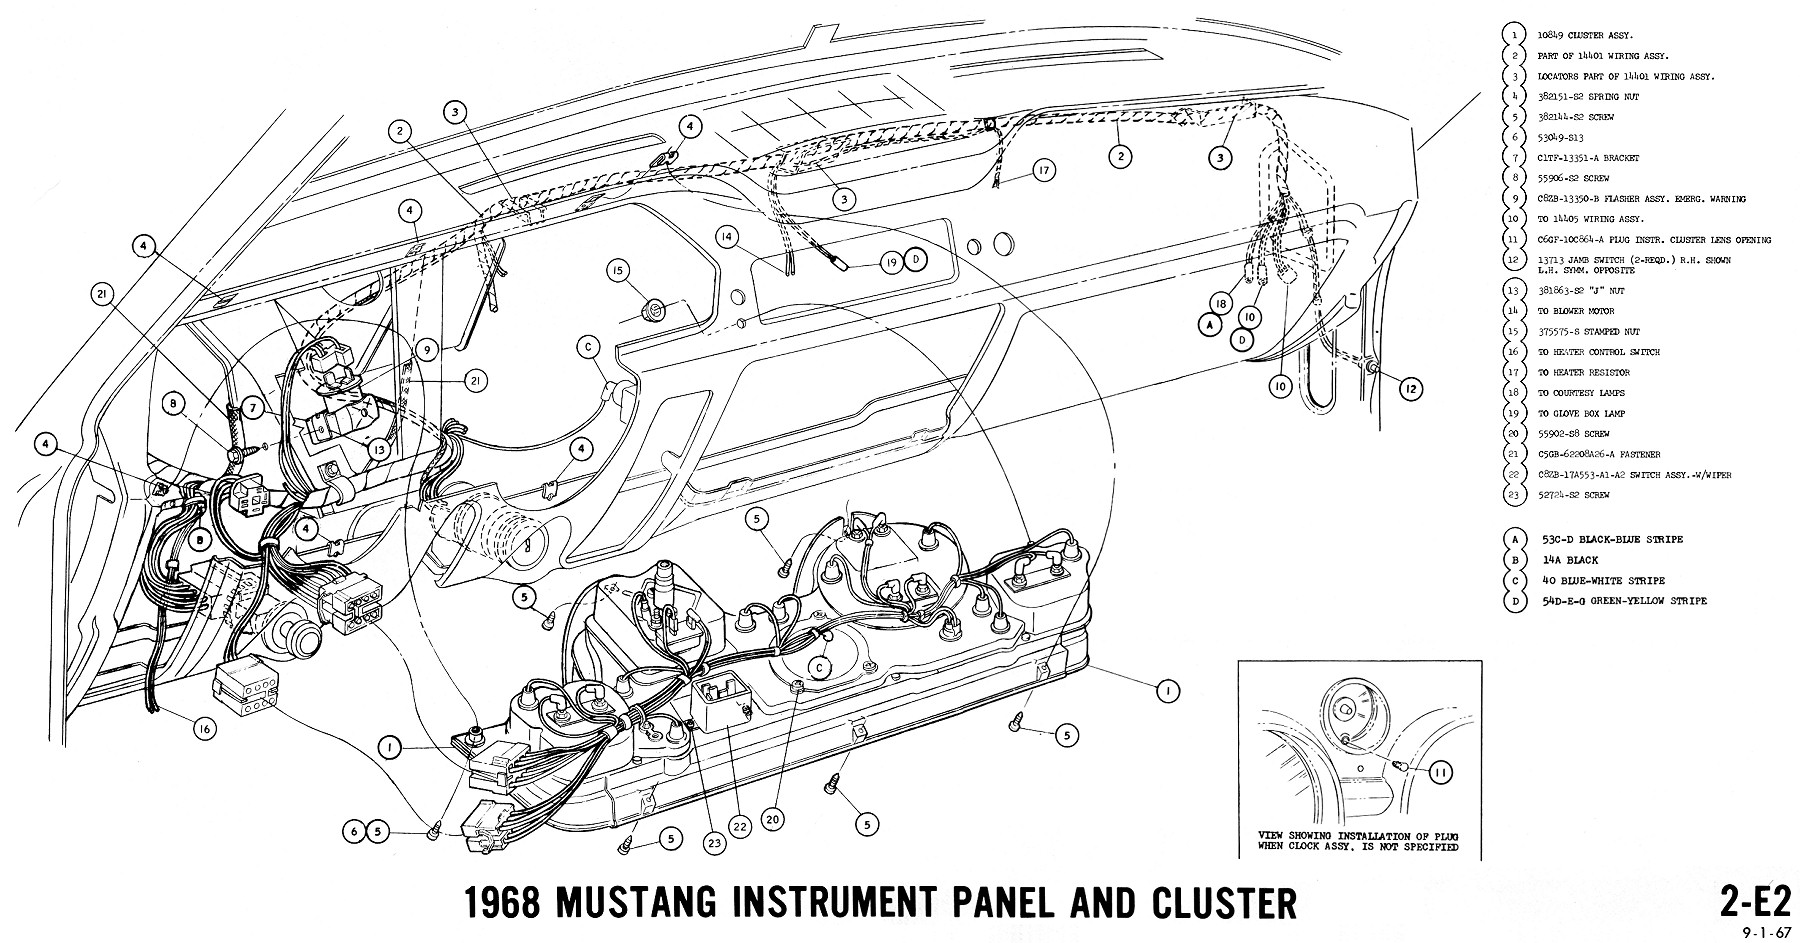 68 Mustang Dome Light Wiring Diagram - Wiring Diagram Article on